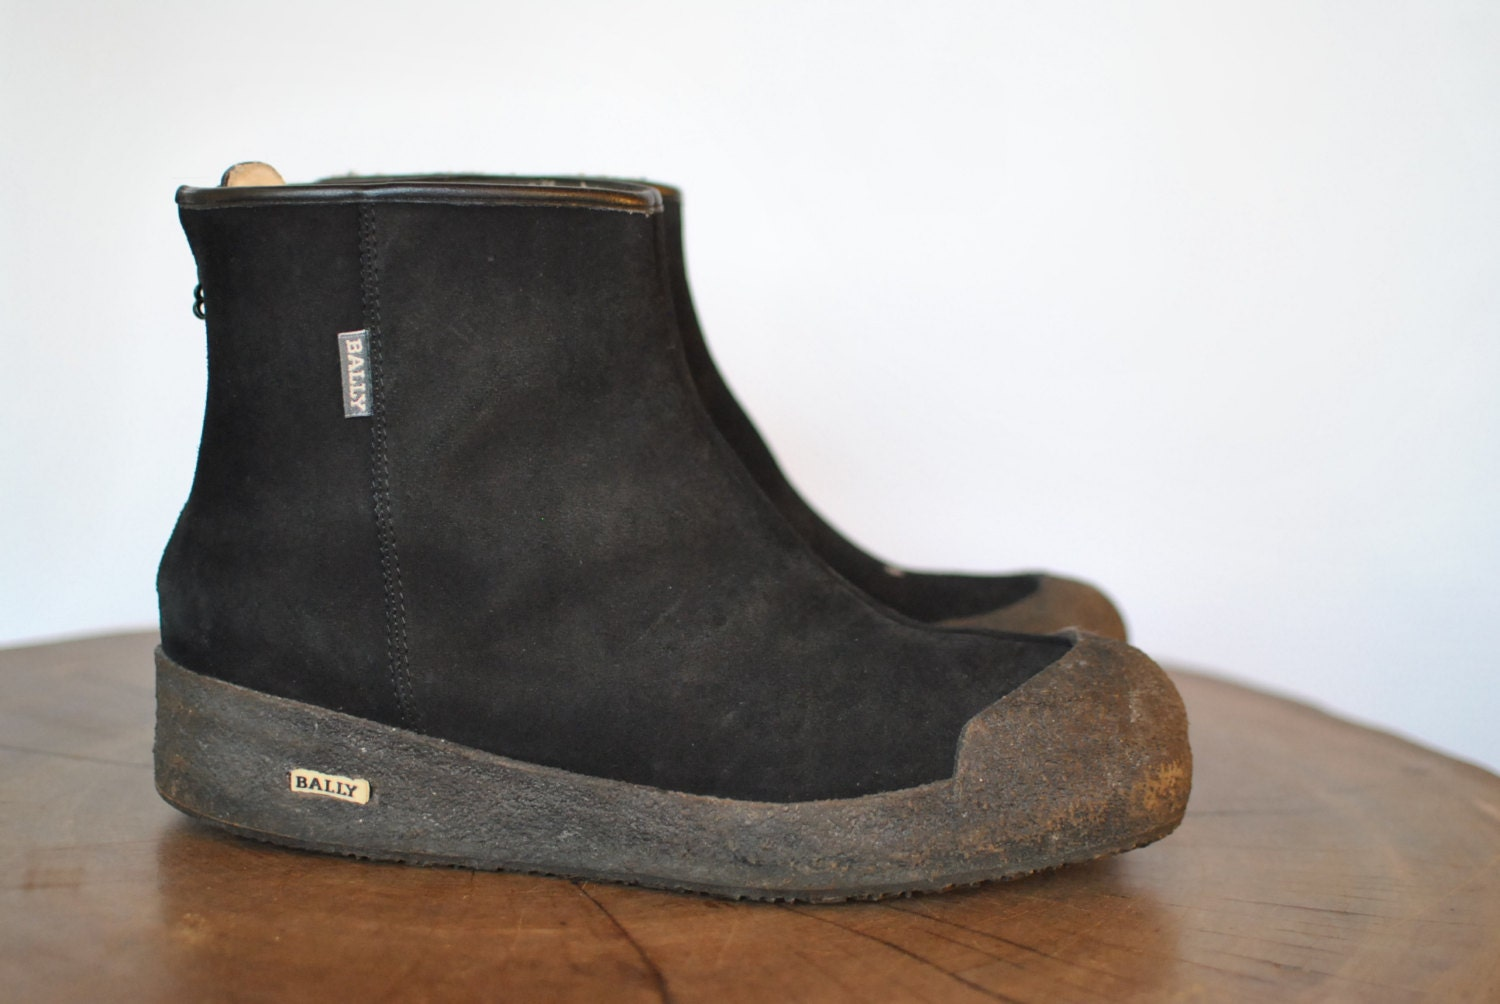 Vintage Bally Boots 44